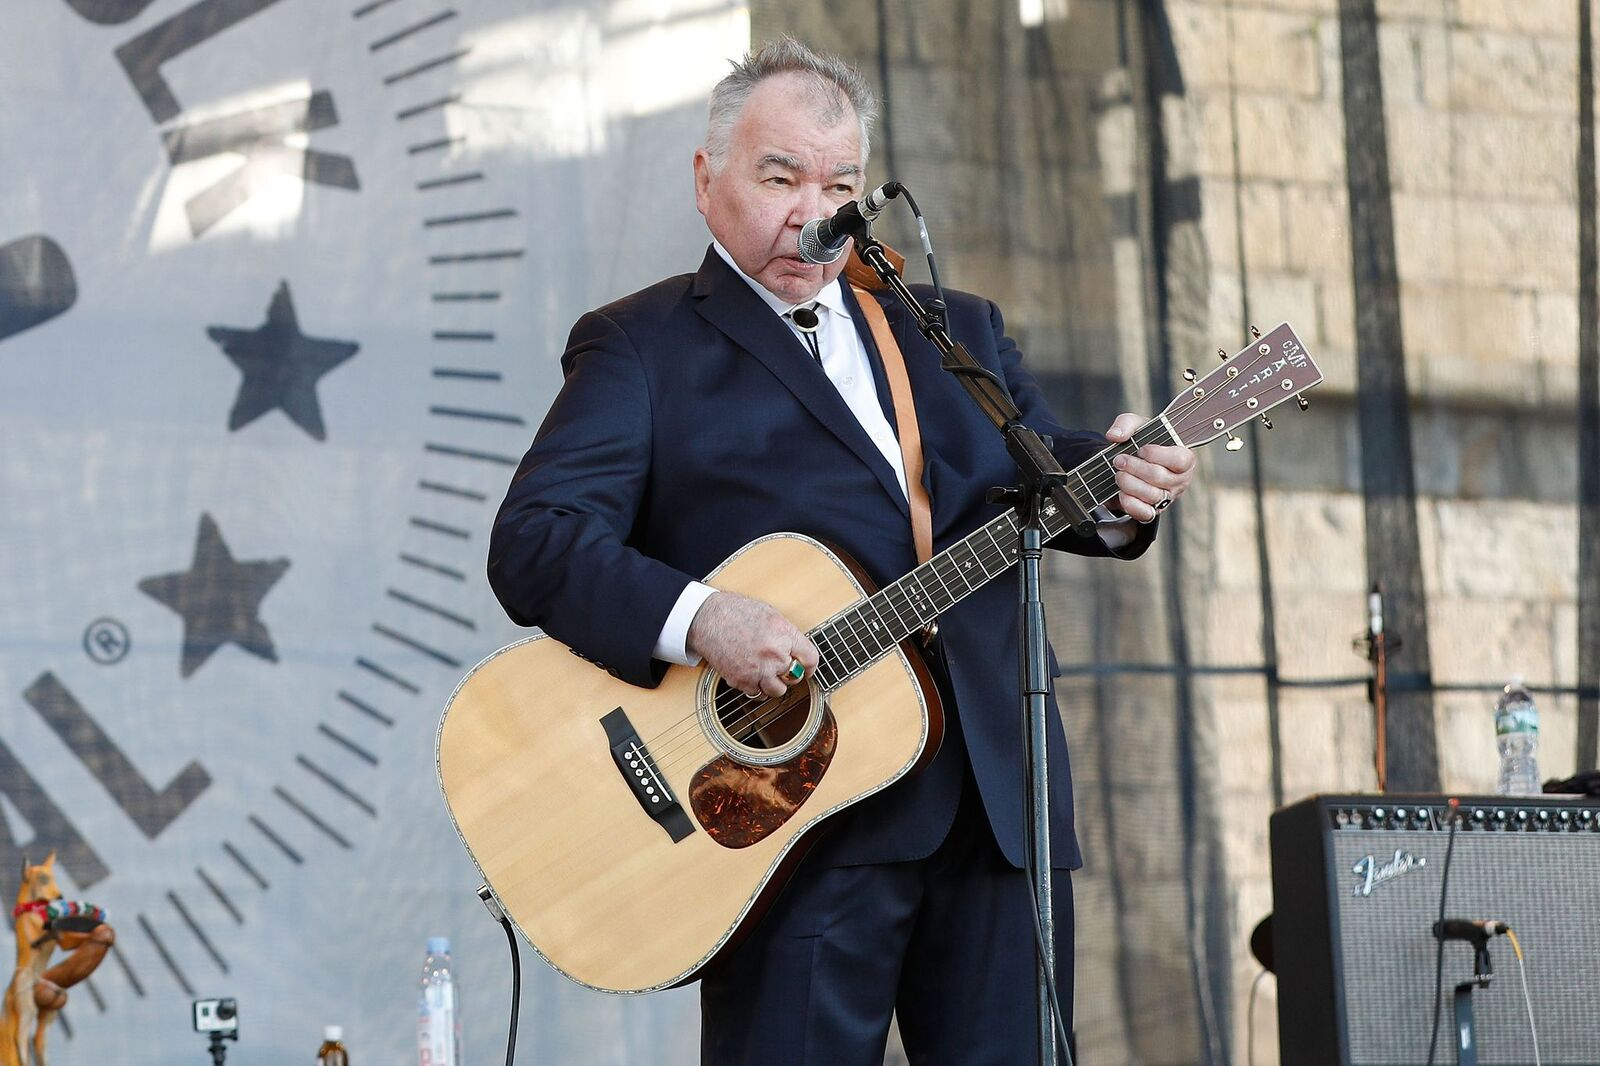 John Prine performs during theNewport Folk Festival at Fort Adams State Park on July 30, 2017, in Newport, Rhode Island | Photo: Taylor Hill/WireImage/Getty Images